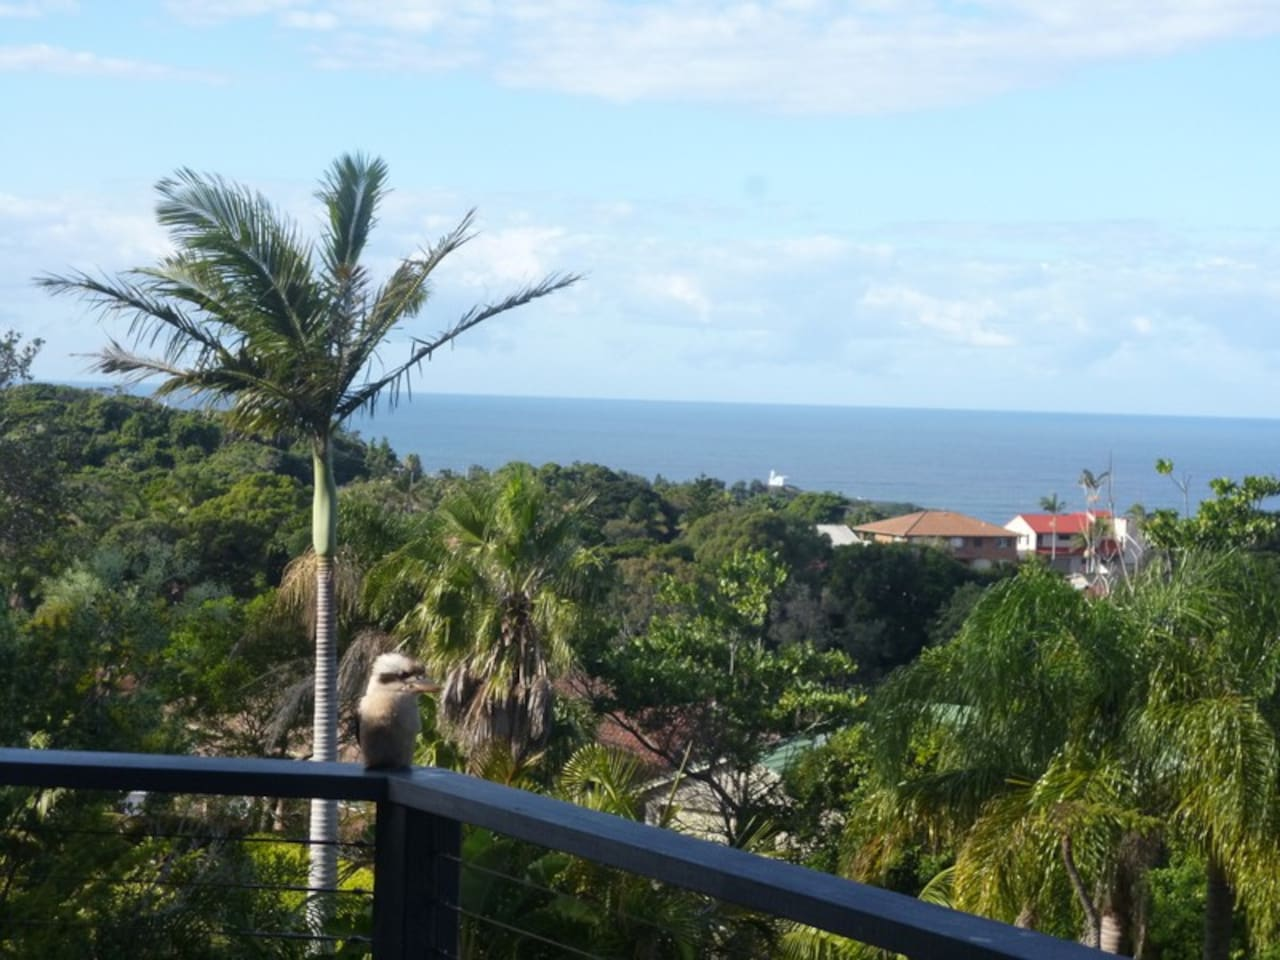 Fabulous view from our little bit of paradise!